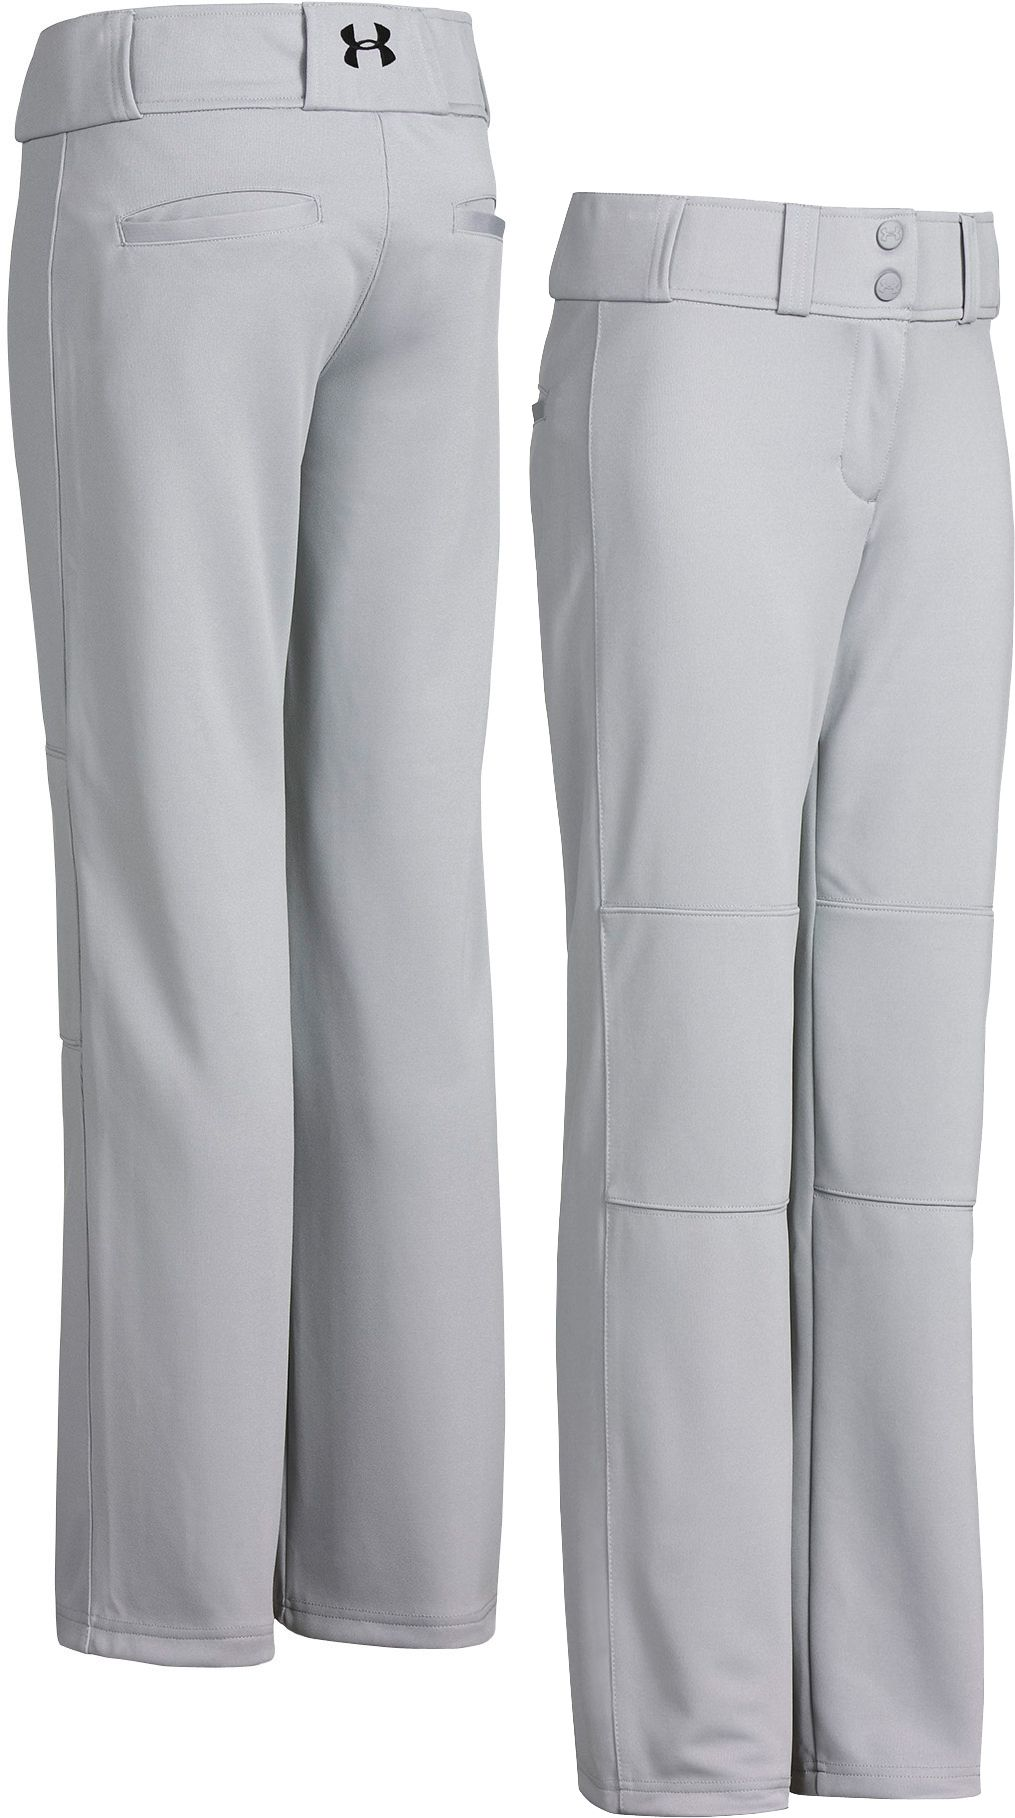 Baseball Pants | DICK'S Sporting Goods